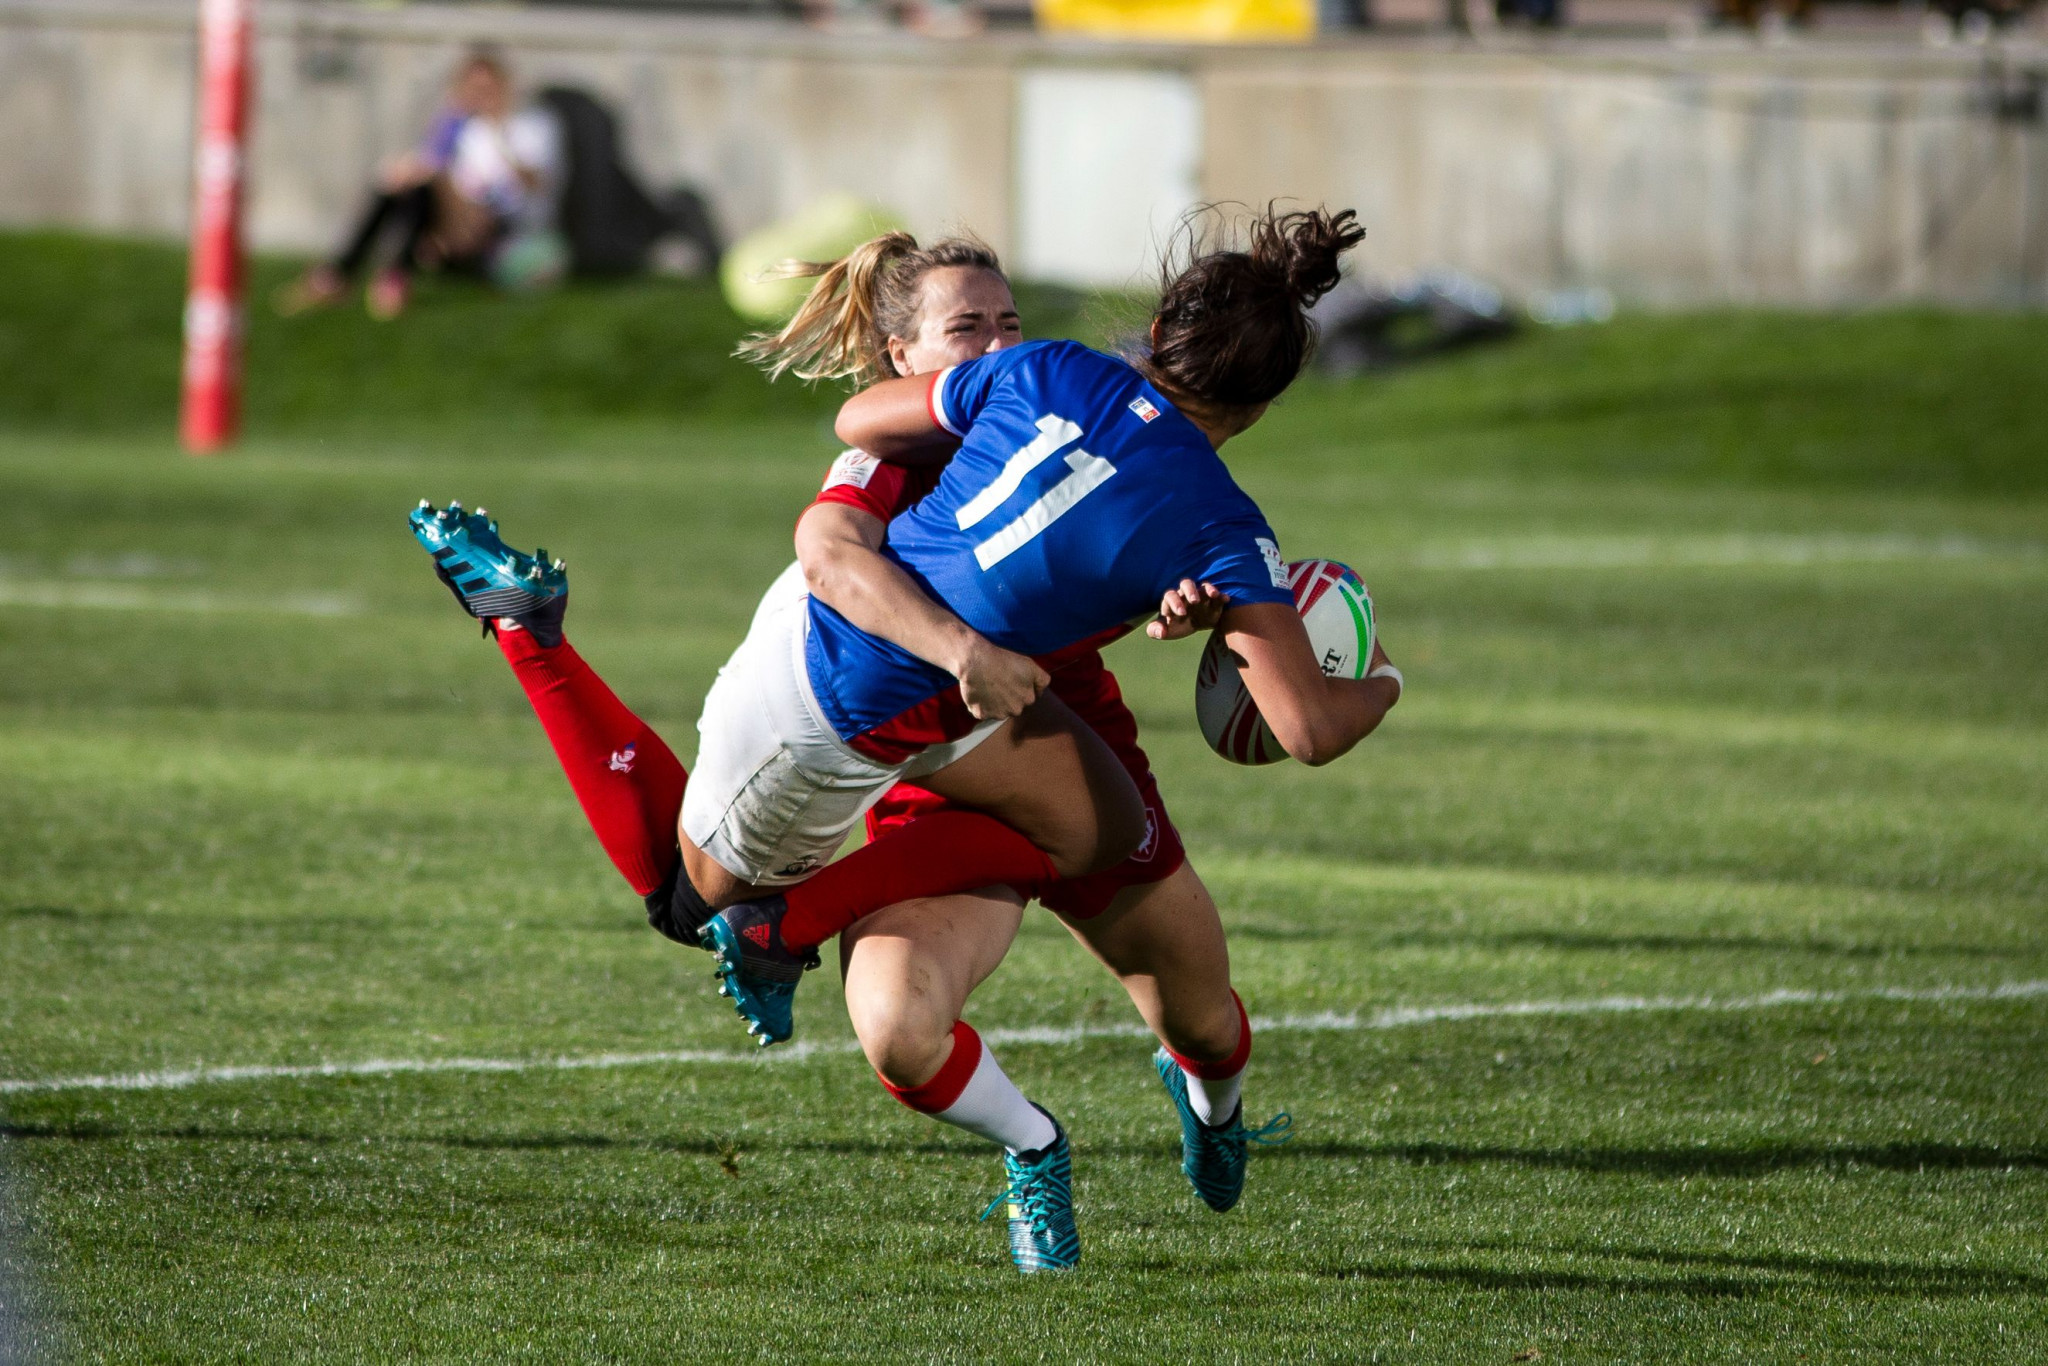 Canada and New Zealand dominate on opening day of World Rugby Women's Sevens Series in Denver